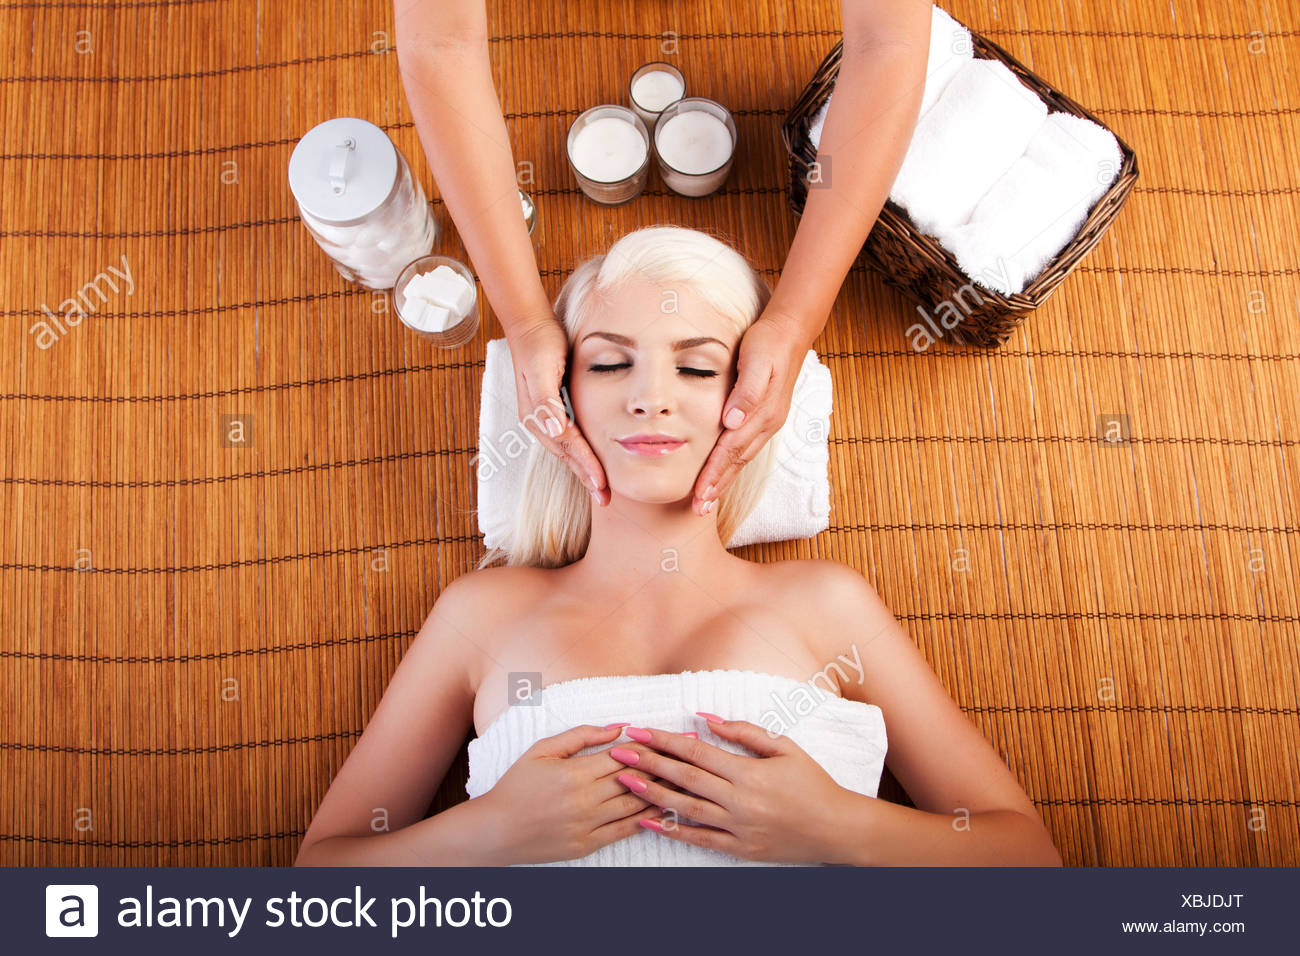 Relaxation pampering facial massage - Stock Image